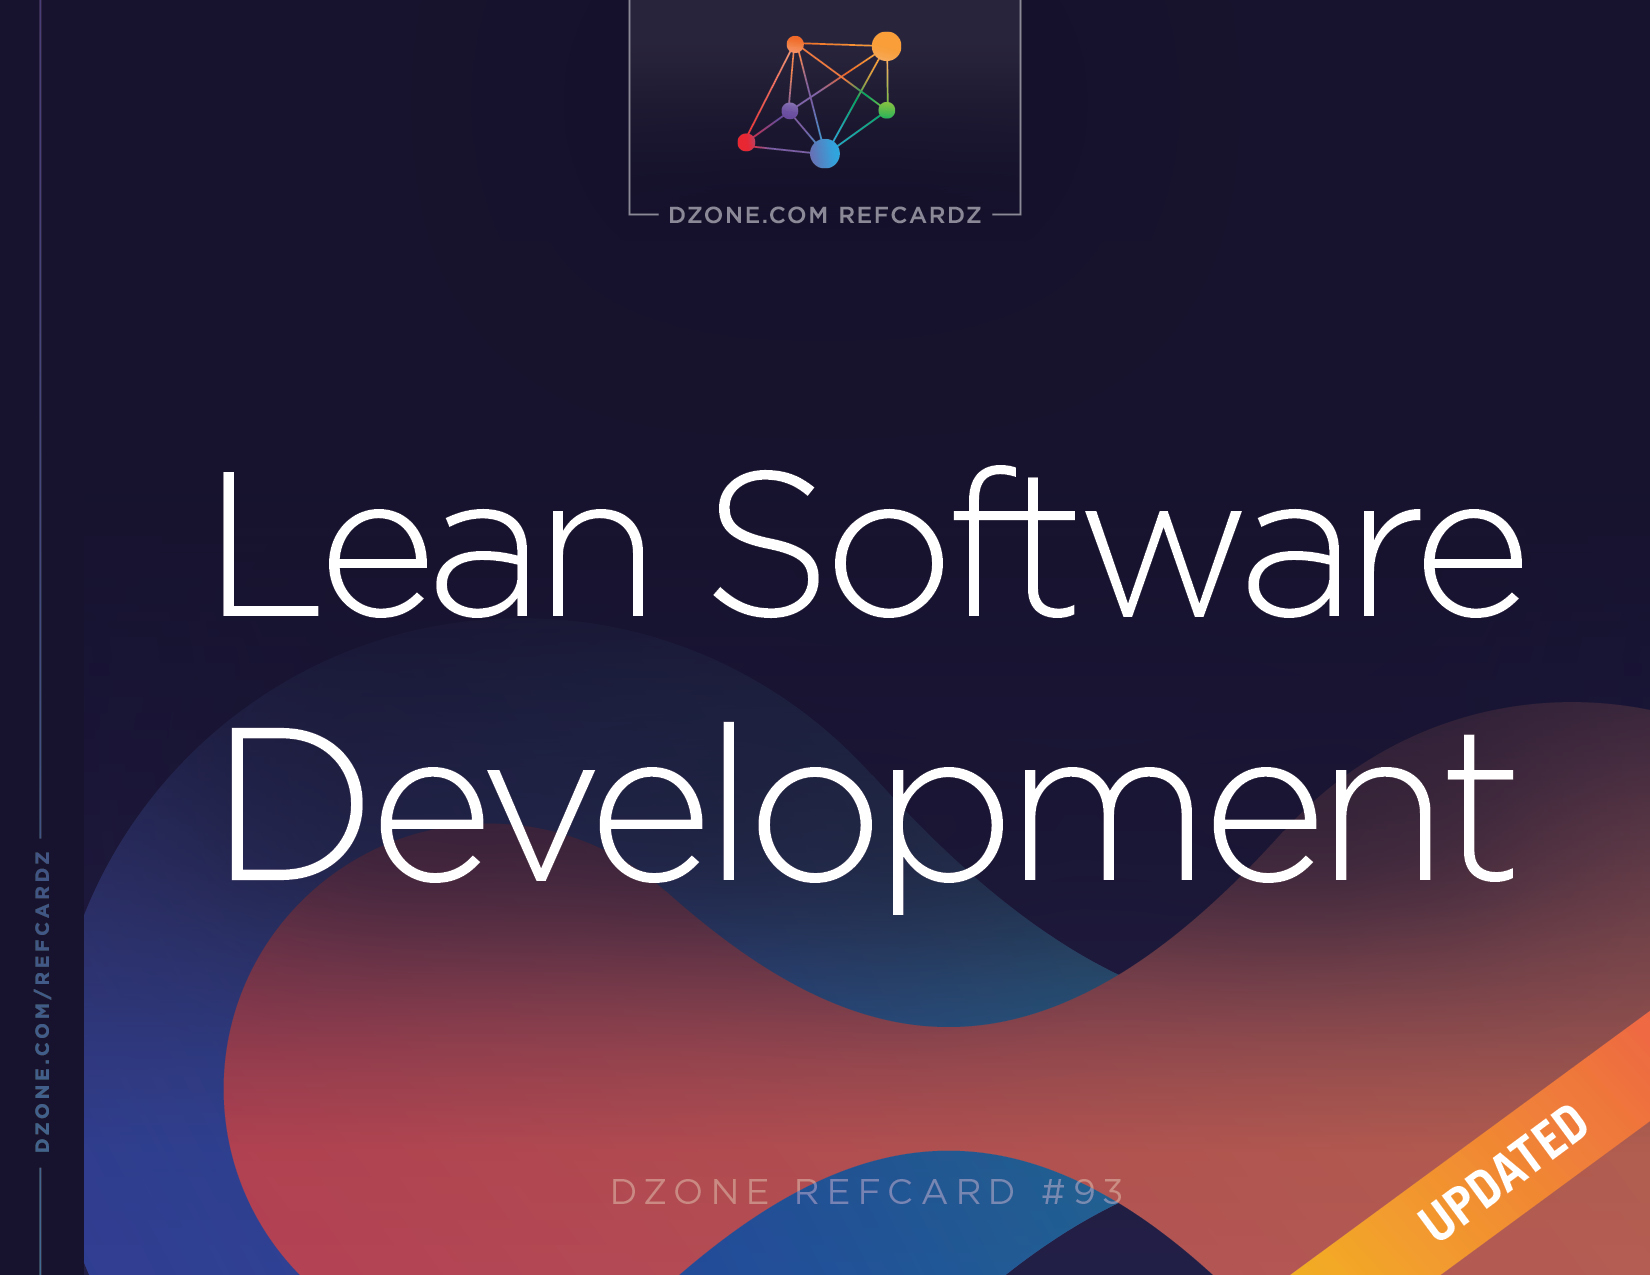 Geliebte Lean Software Development - DZone - Refcardz &RP_34